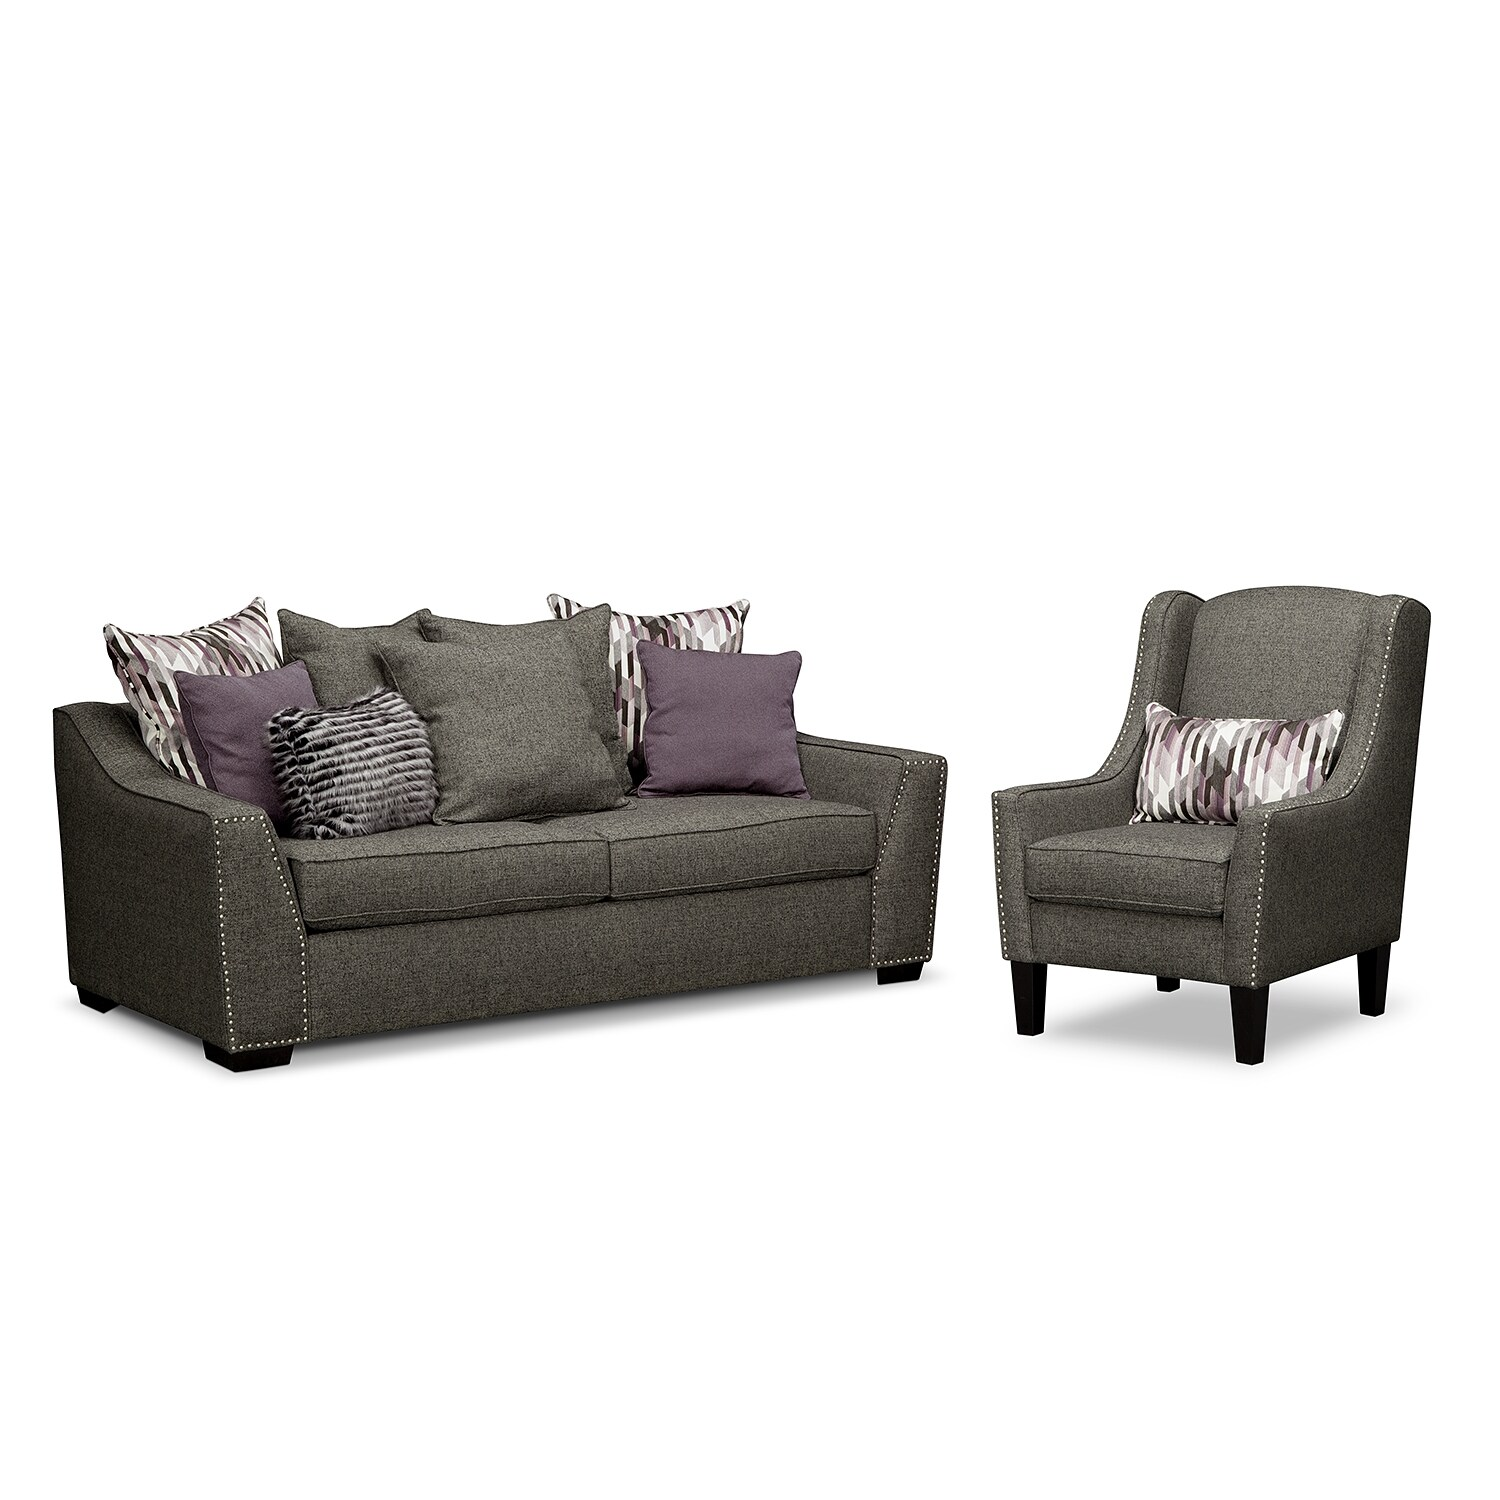 Living Room Furniture - Ritz 2 Pc. Living Room w/Accent Chair